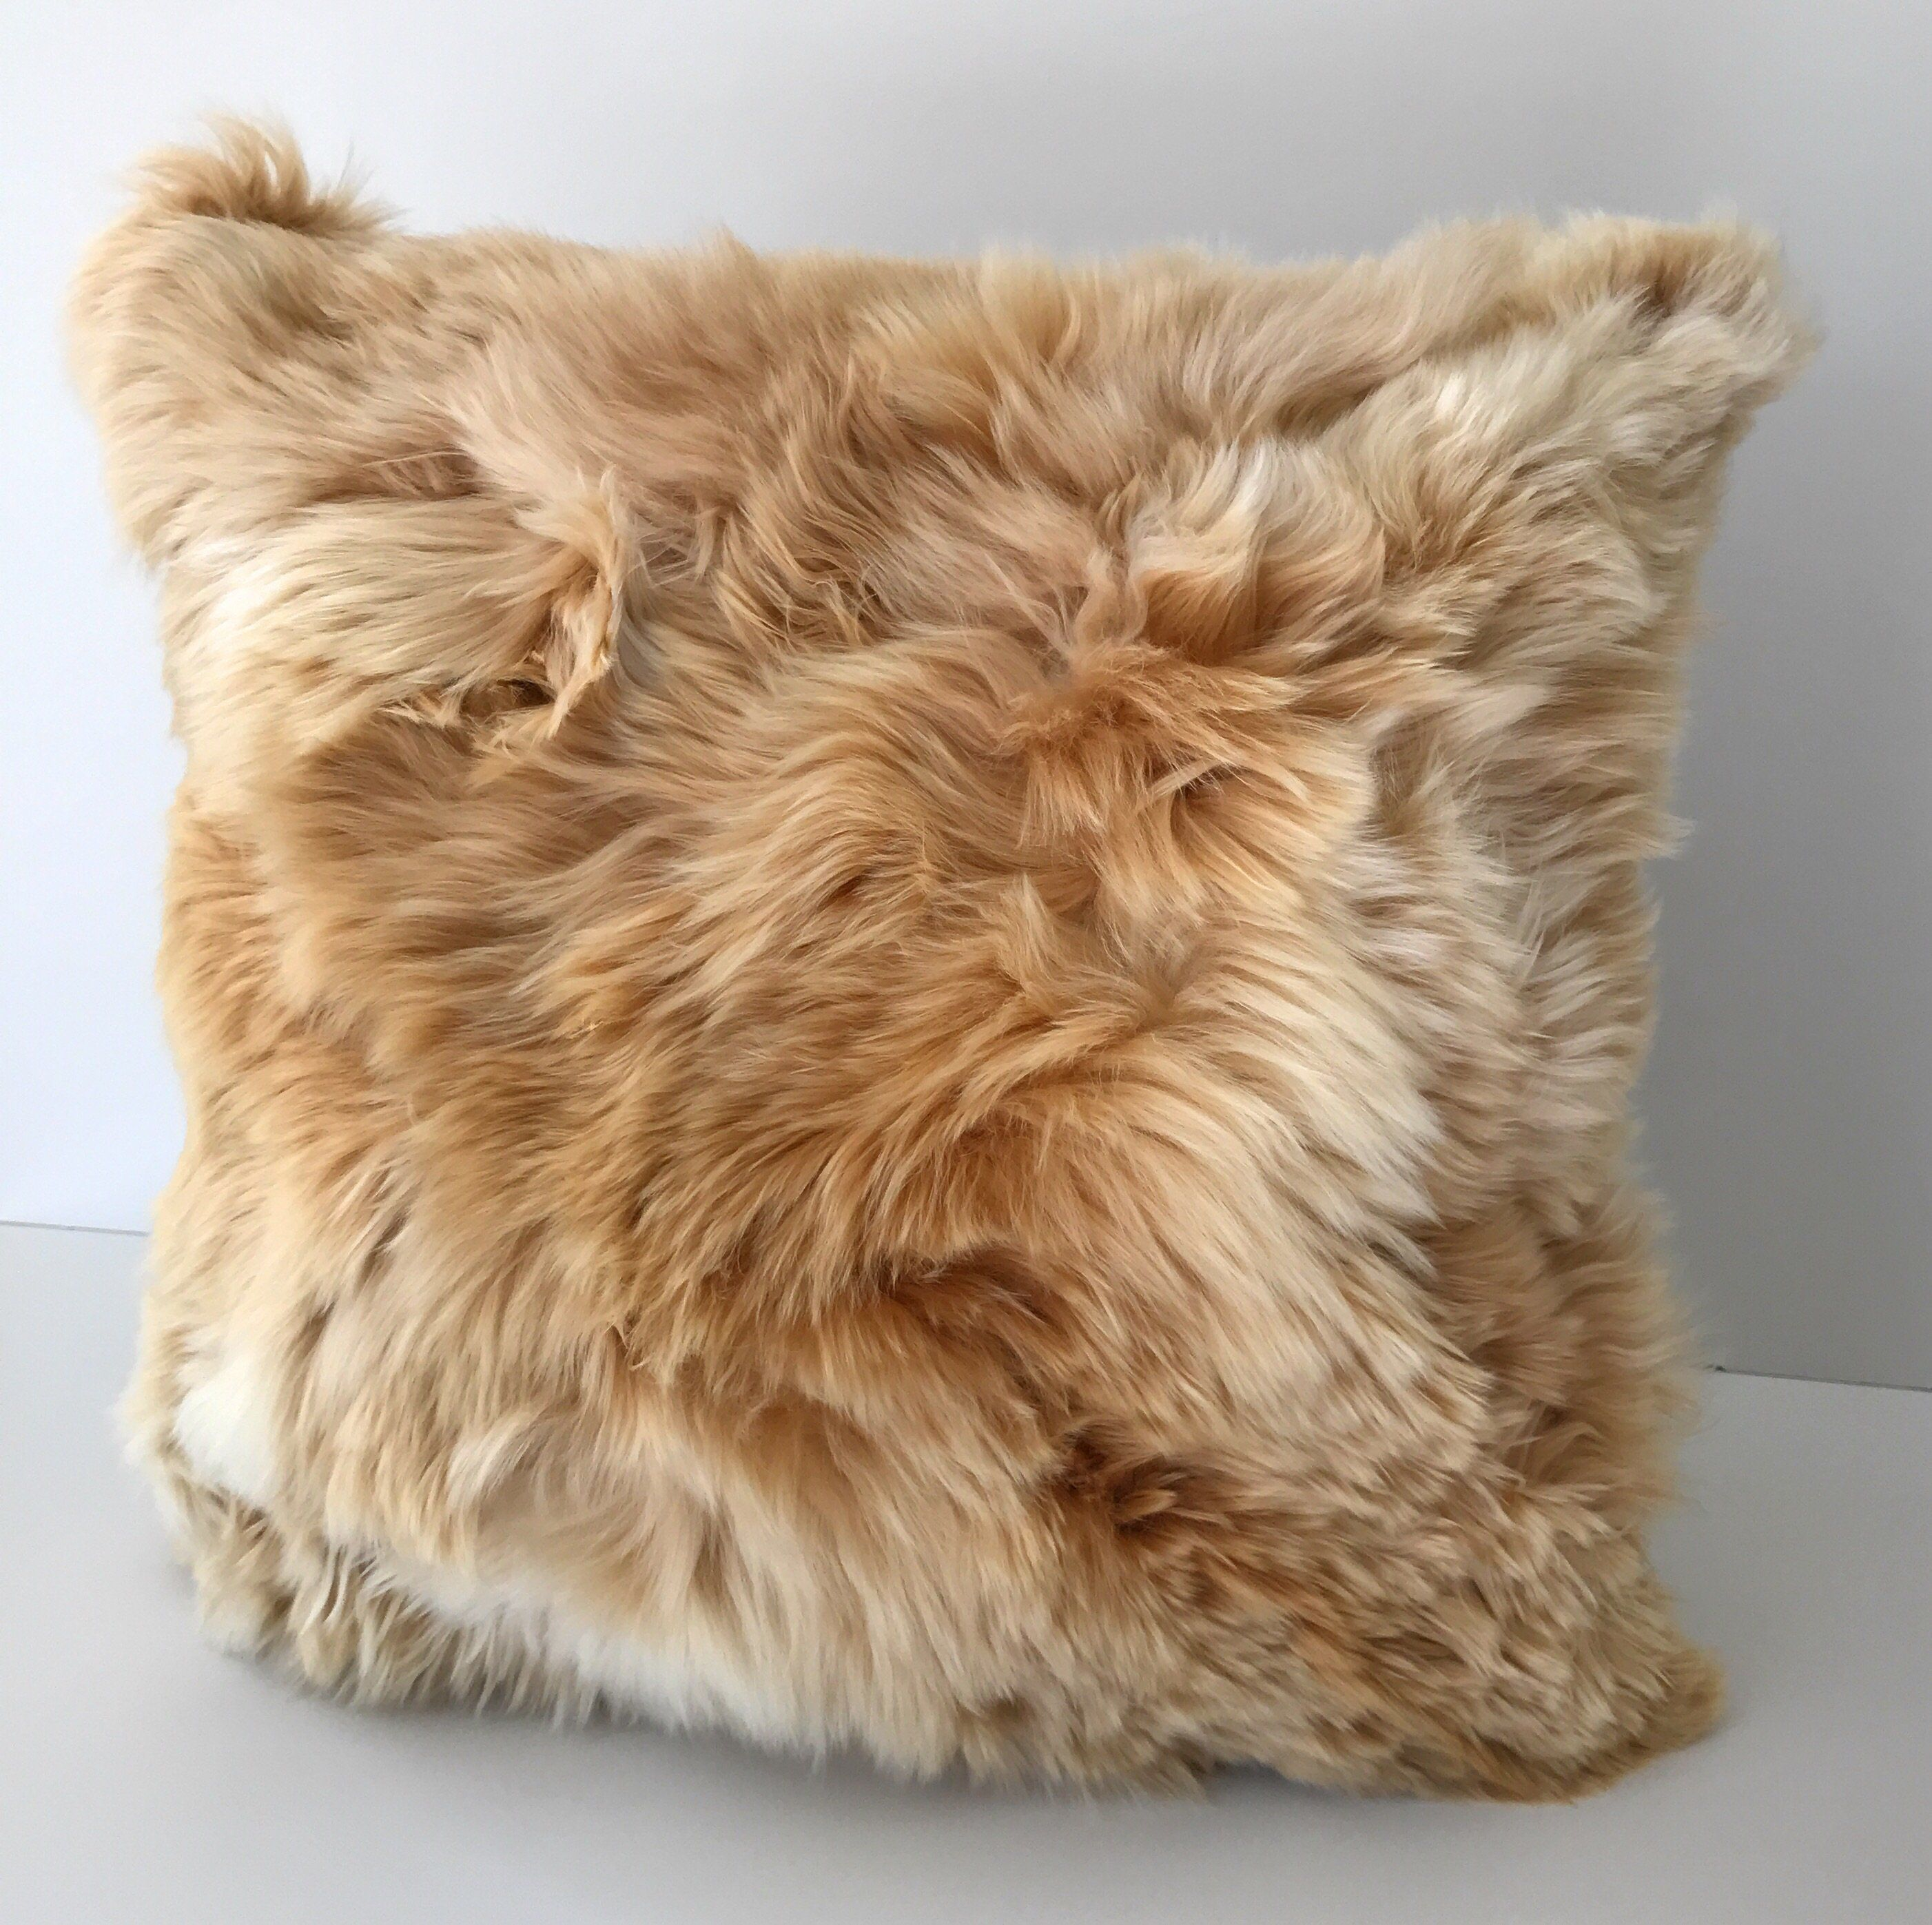 Taupe, Baby Alpaca Fur pillow cover. 20